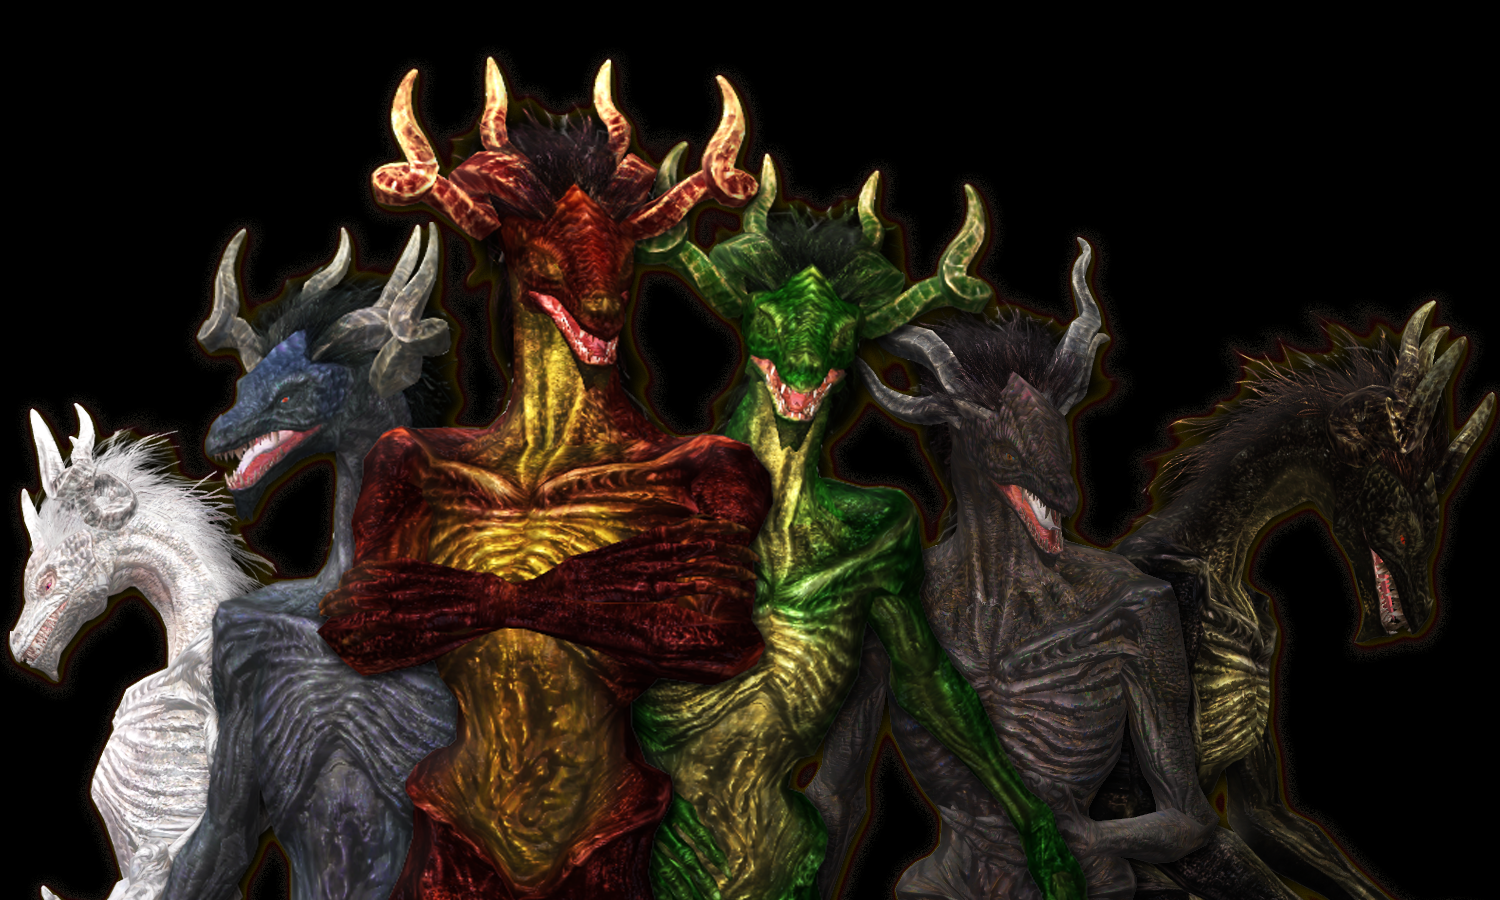 Textures for Dragonoid form at Dark Souls 3 Nexus - Mods and Community